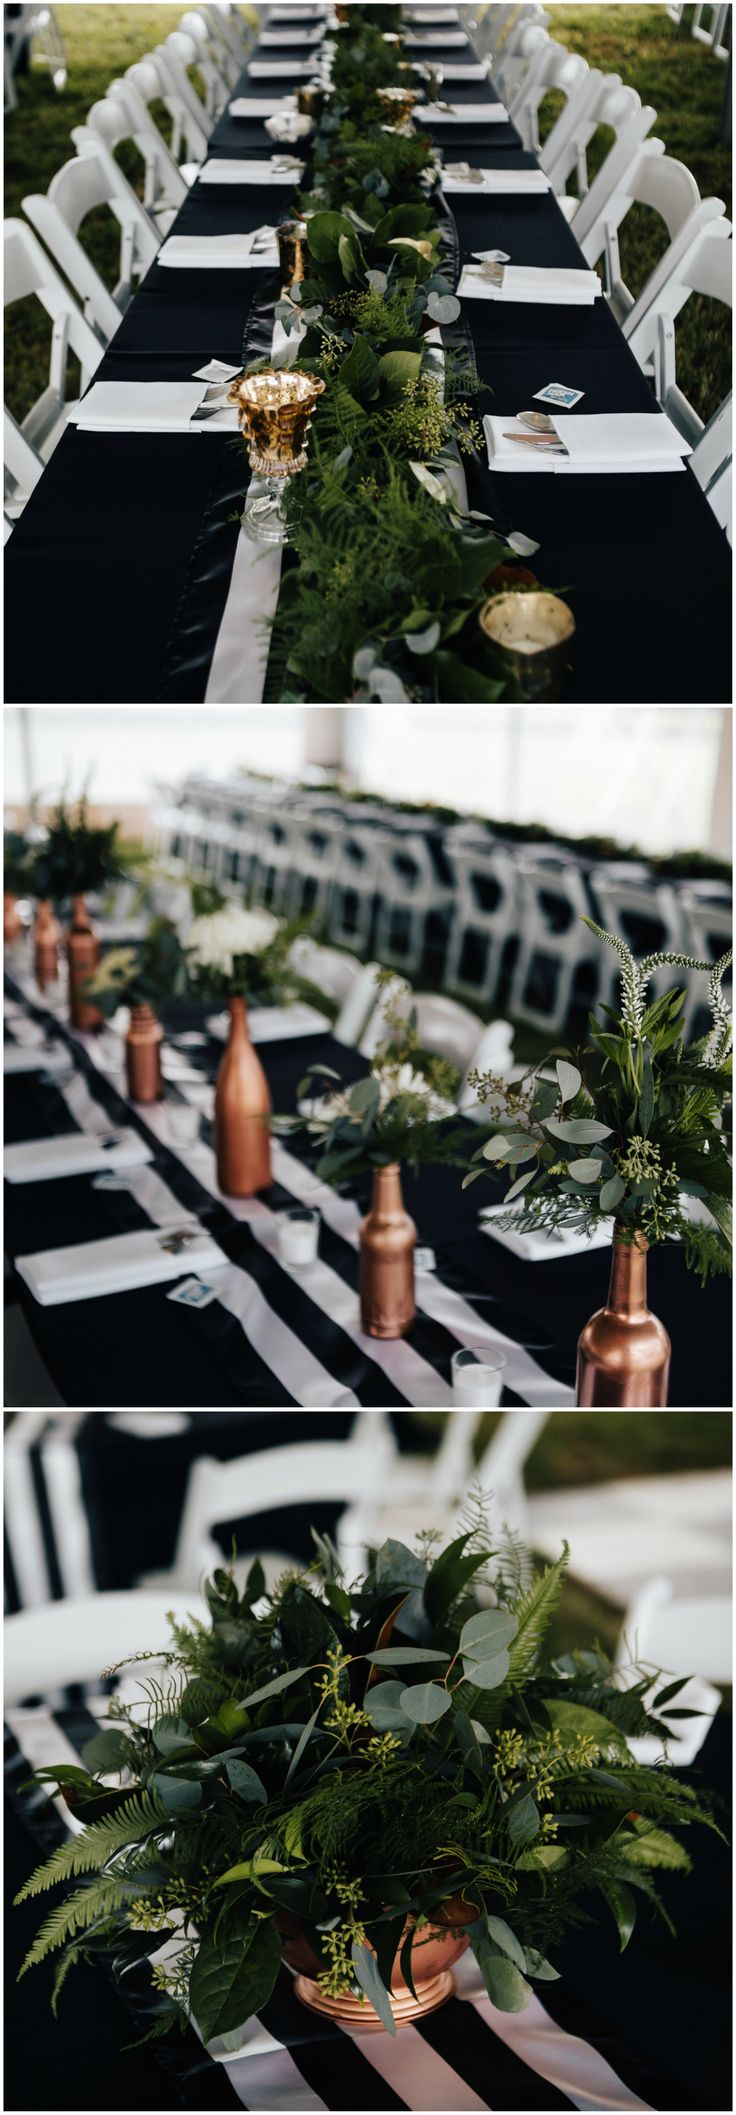 Natural wedding reception decor, copper painted bottles, leafy centerpieces, modern black tablecloths, black and white striped table runner, white napkins // Amanda Sutton Photography